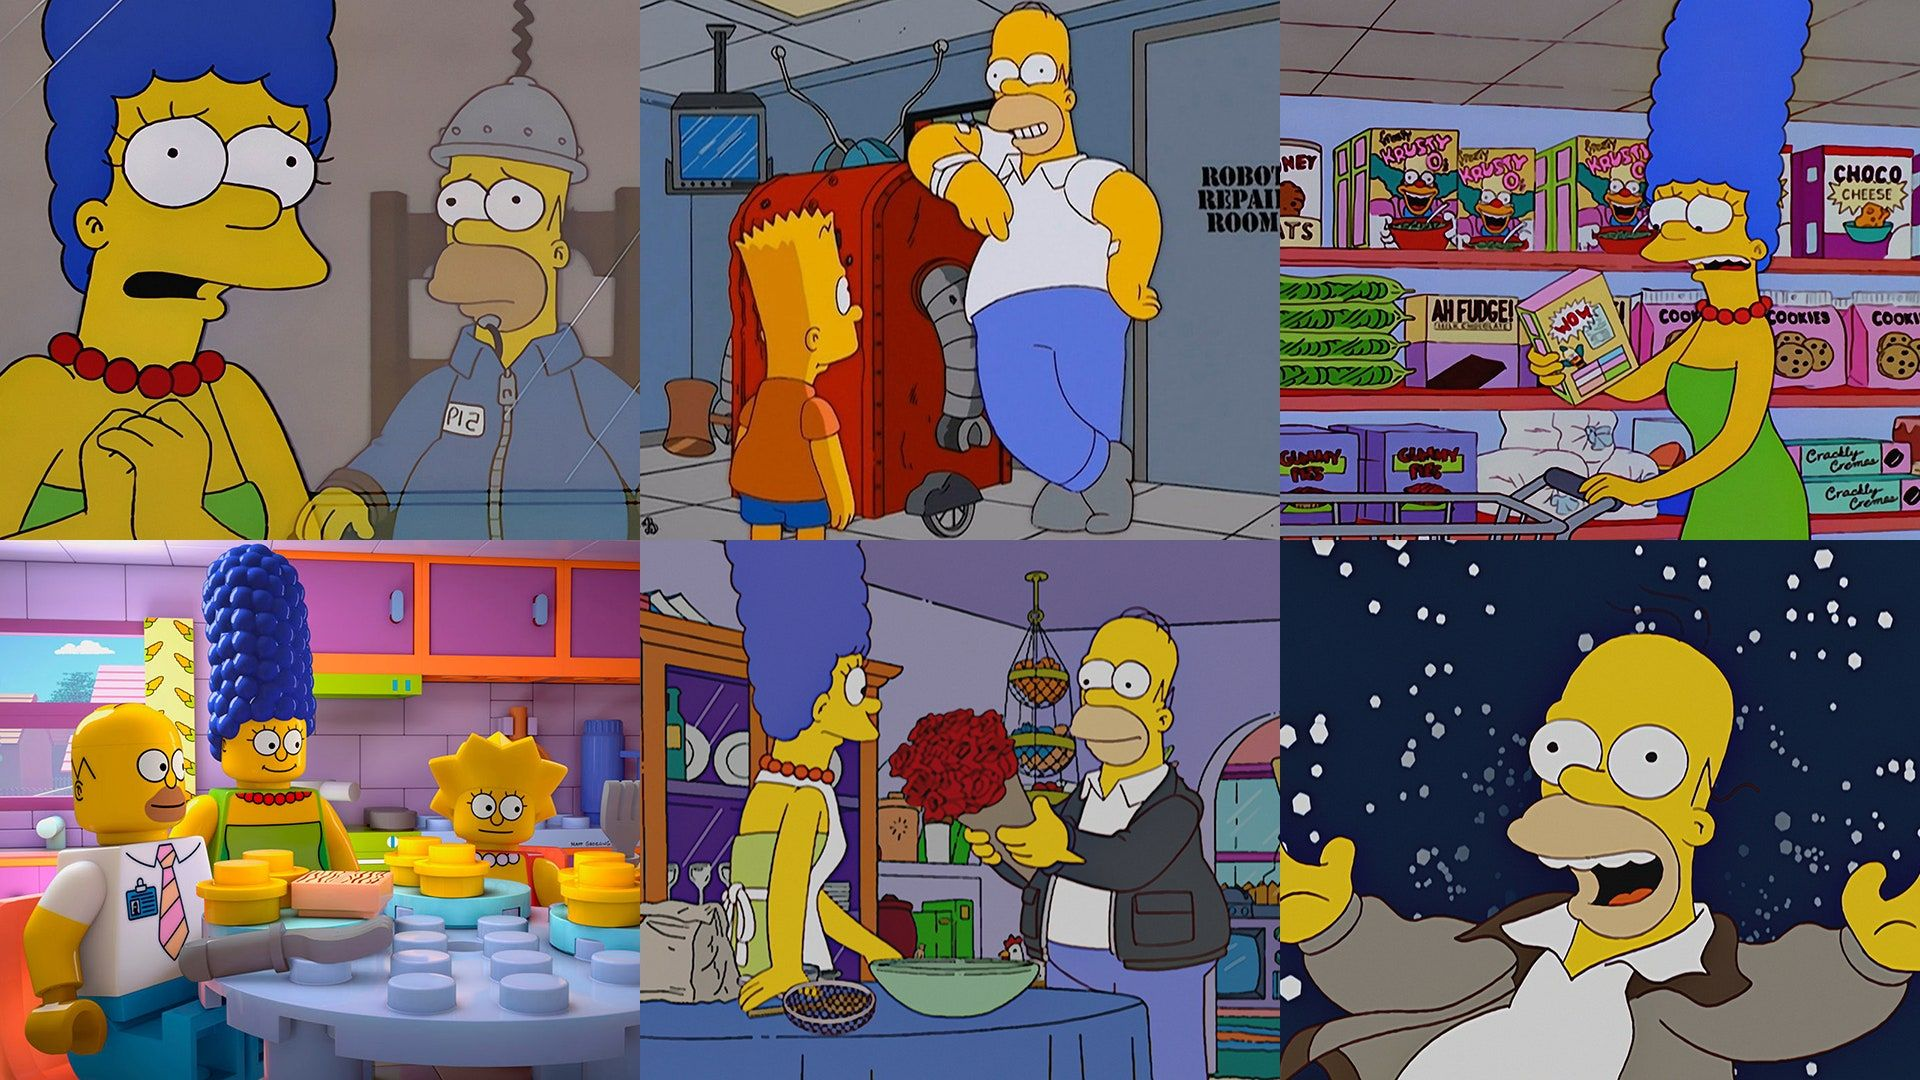 Best Simpsons episodes post2000 (that you probably haven